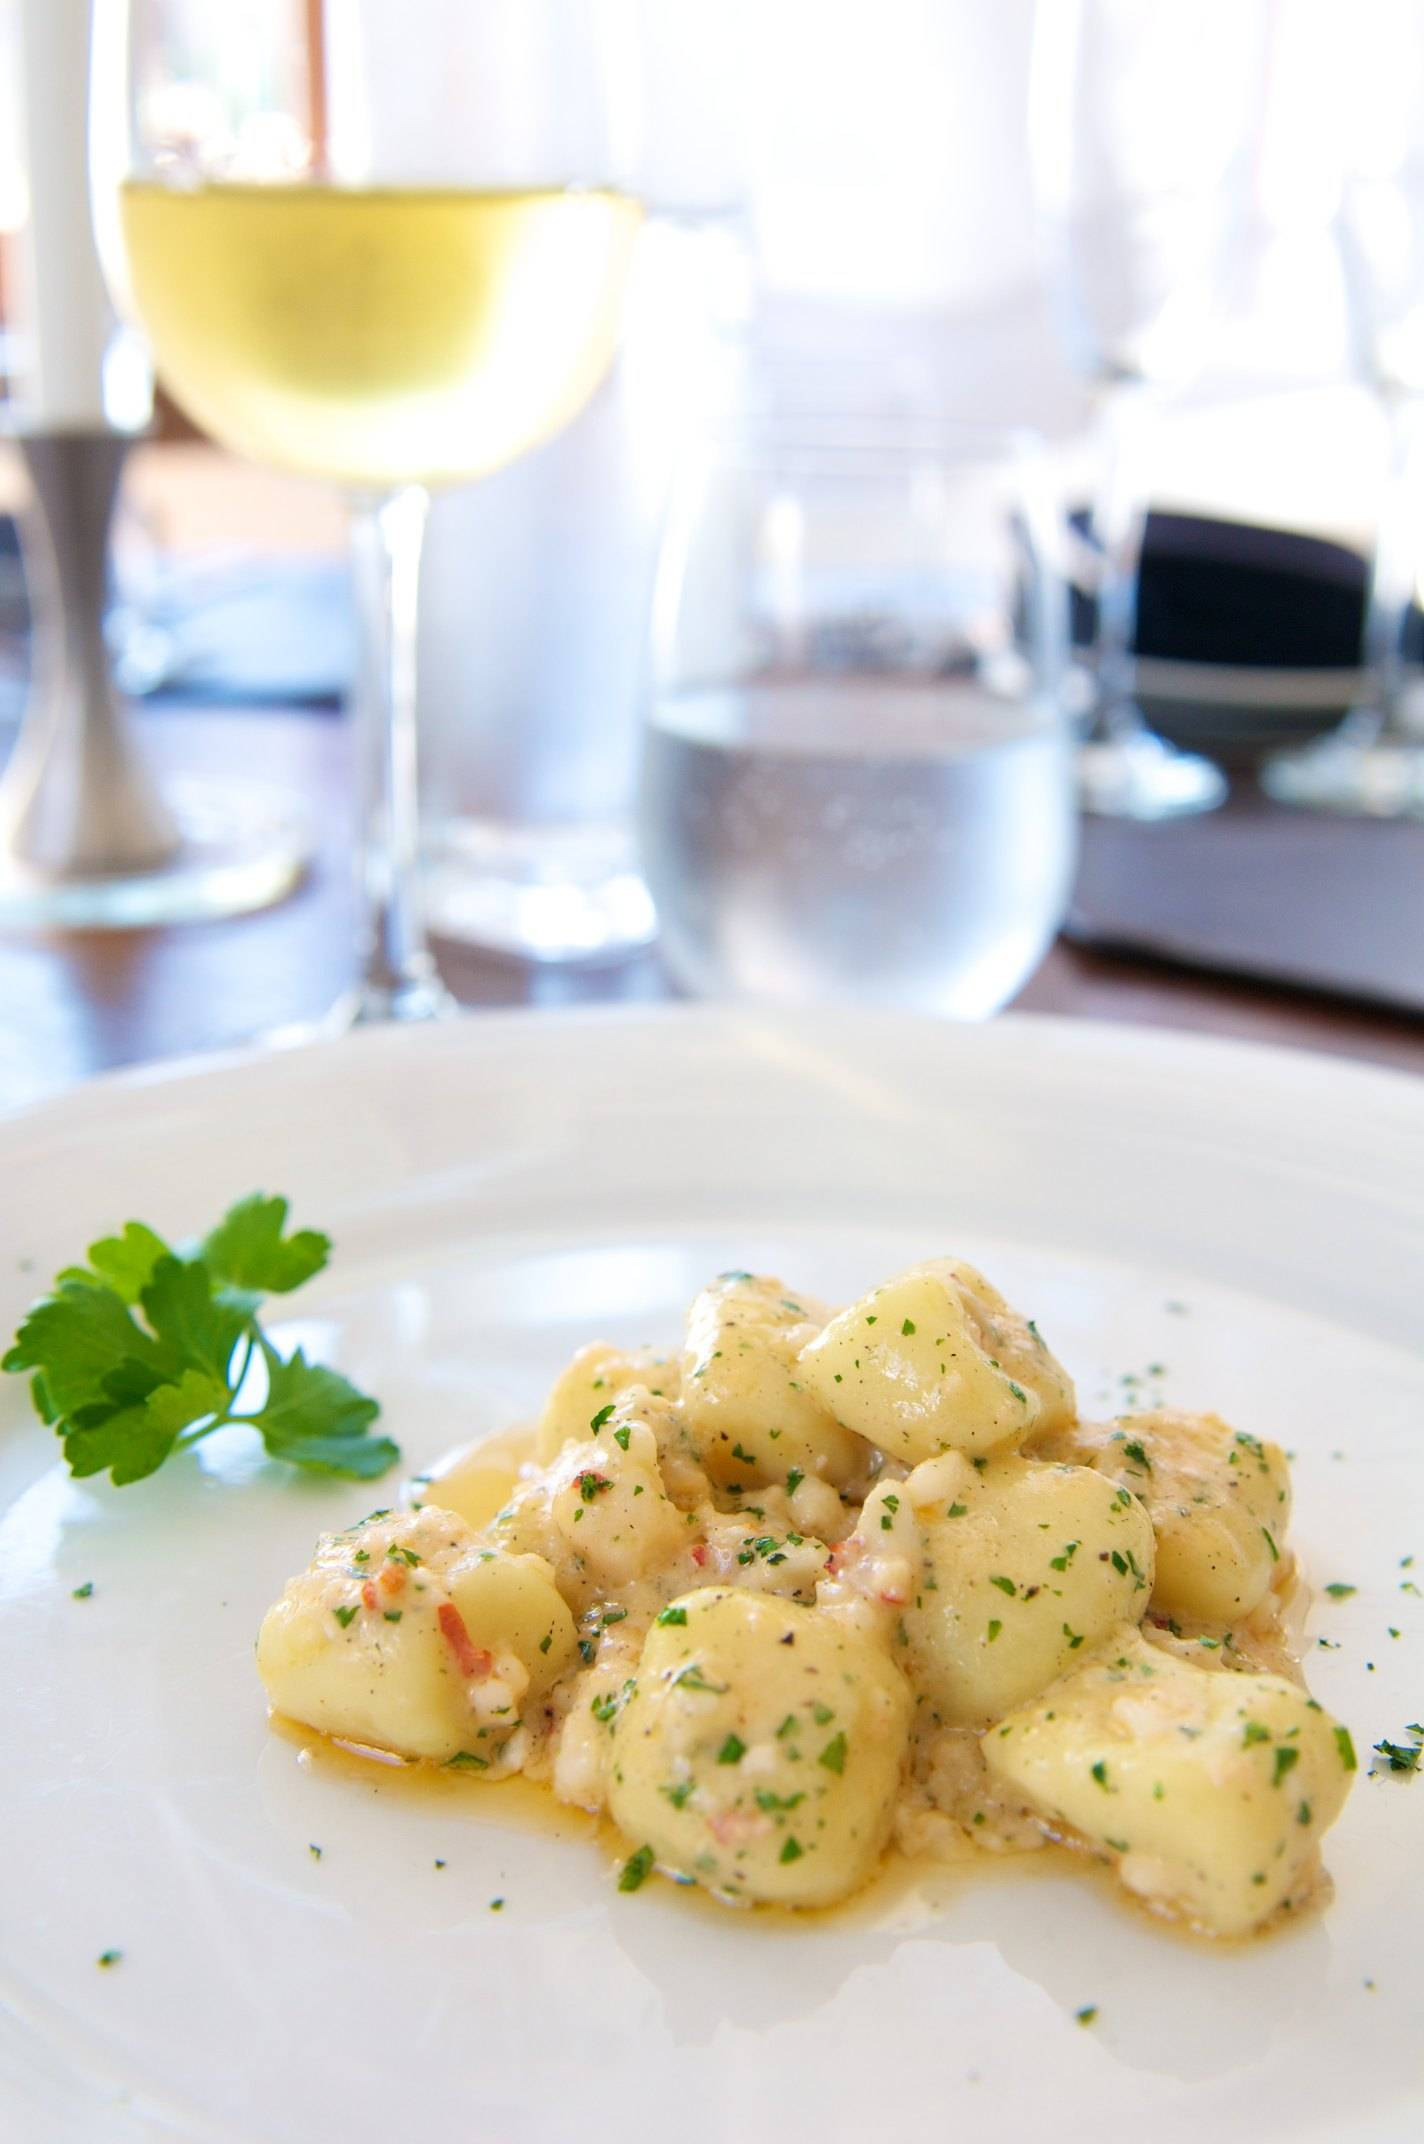 La Sosta Enoteca Gnocchi w: Lobster Photo